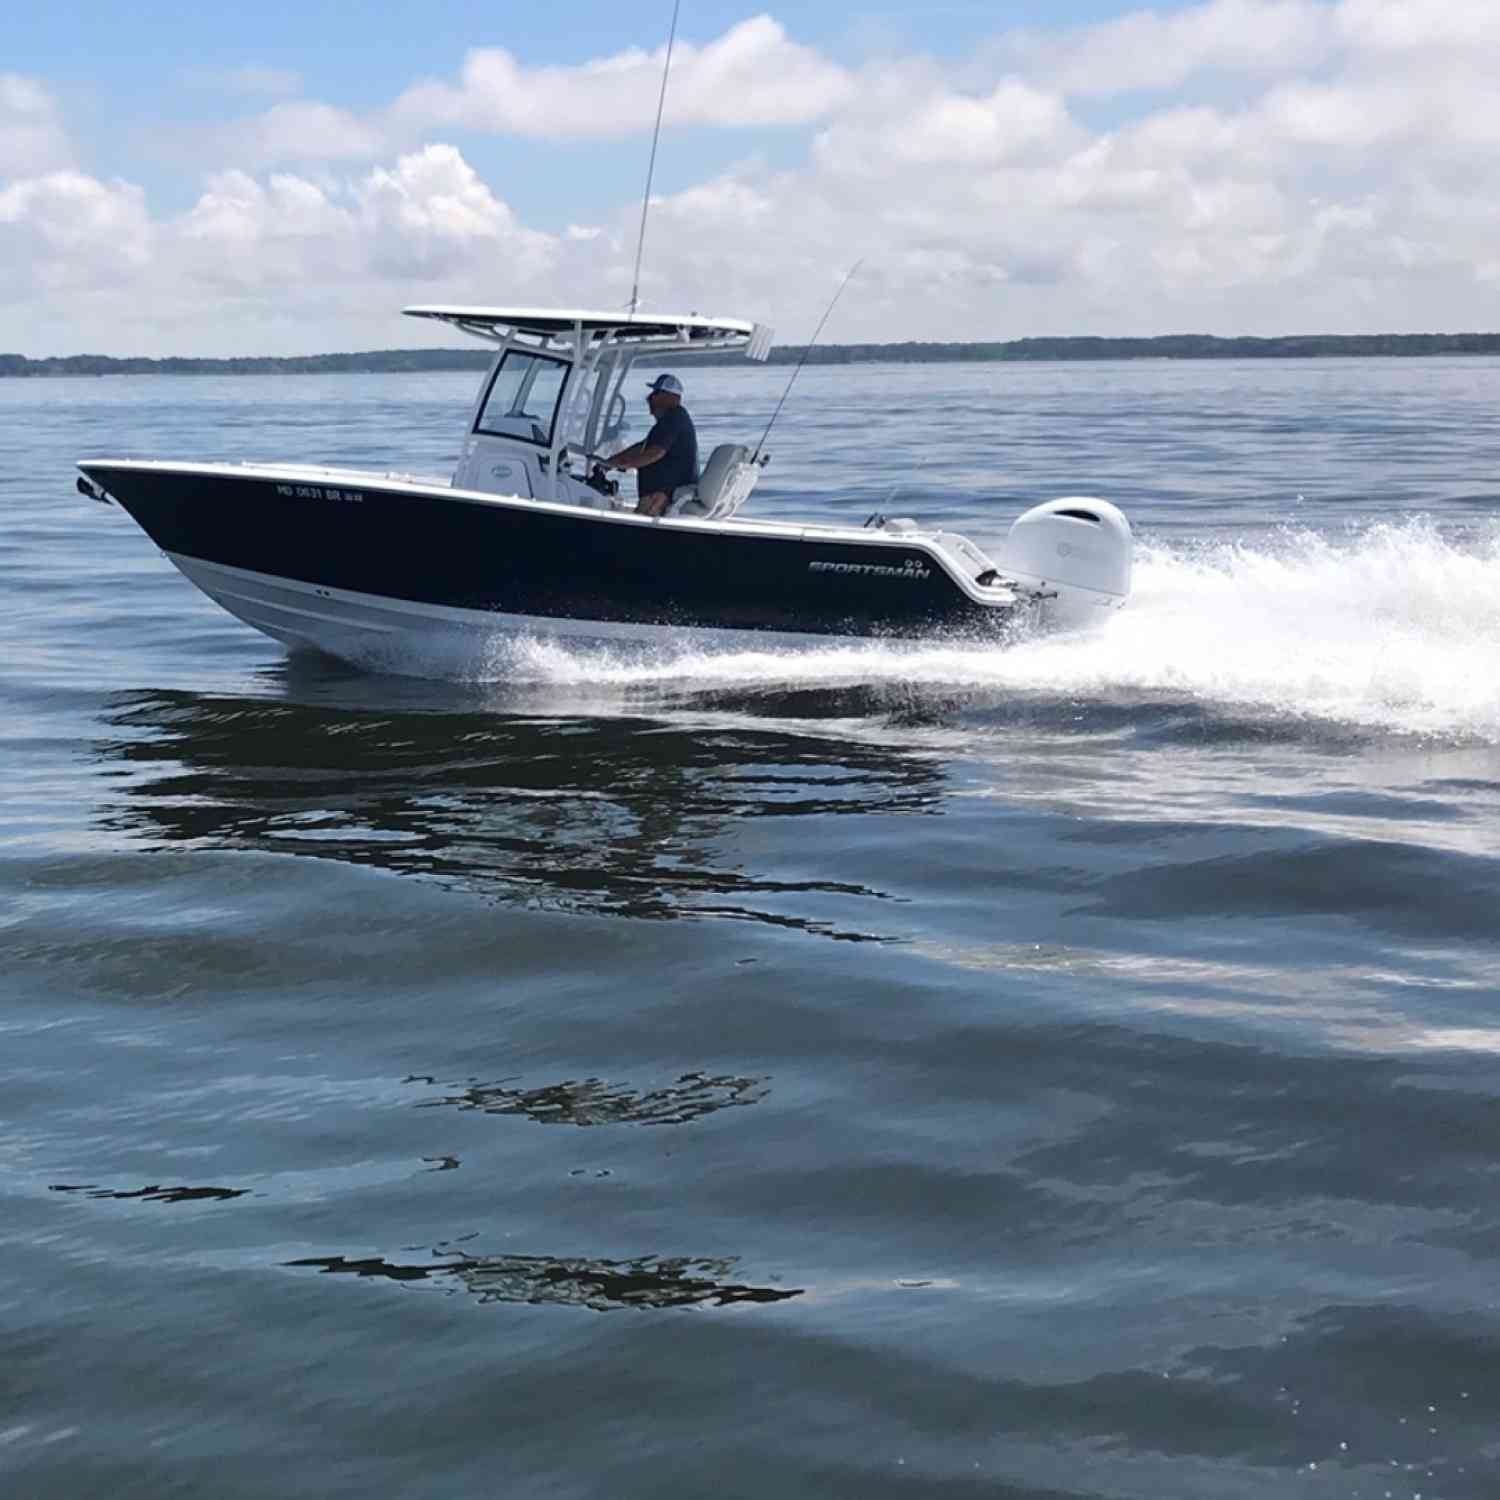 Title: Fathers day cruising - On board their Sportsman Open 252 Center Console - Location: Kent island , Md.. Participating in the Photo Contest #SportsmanJuly2020